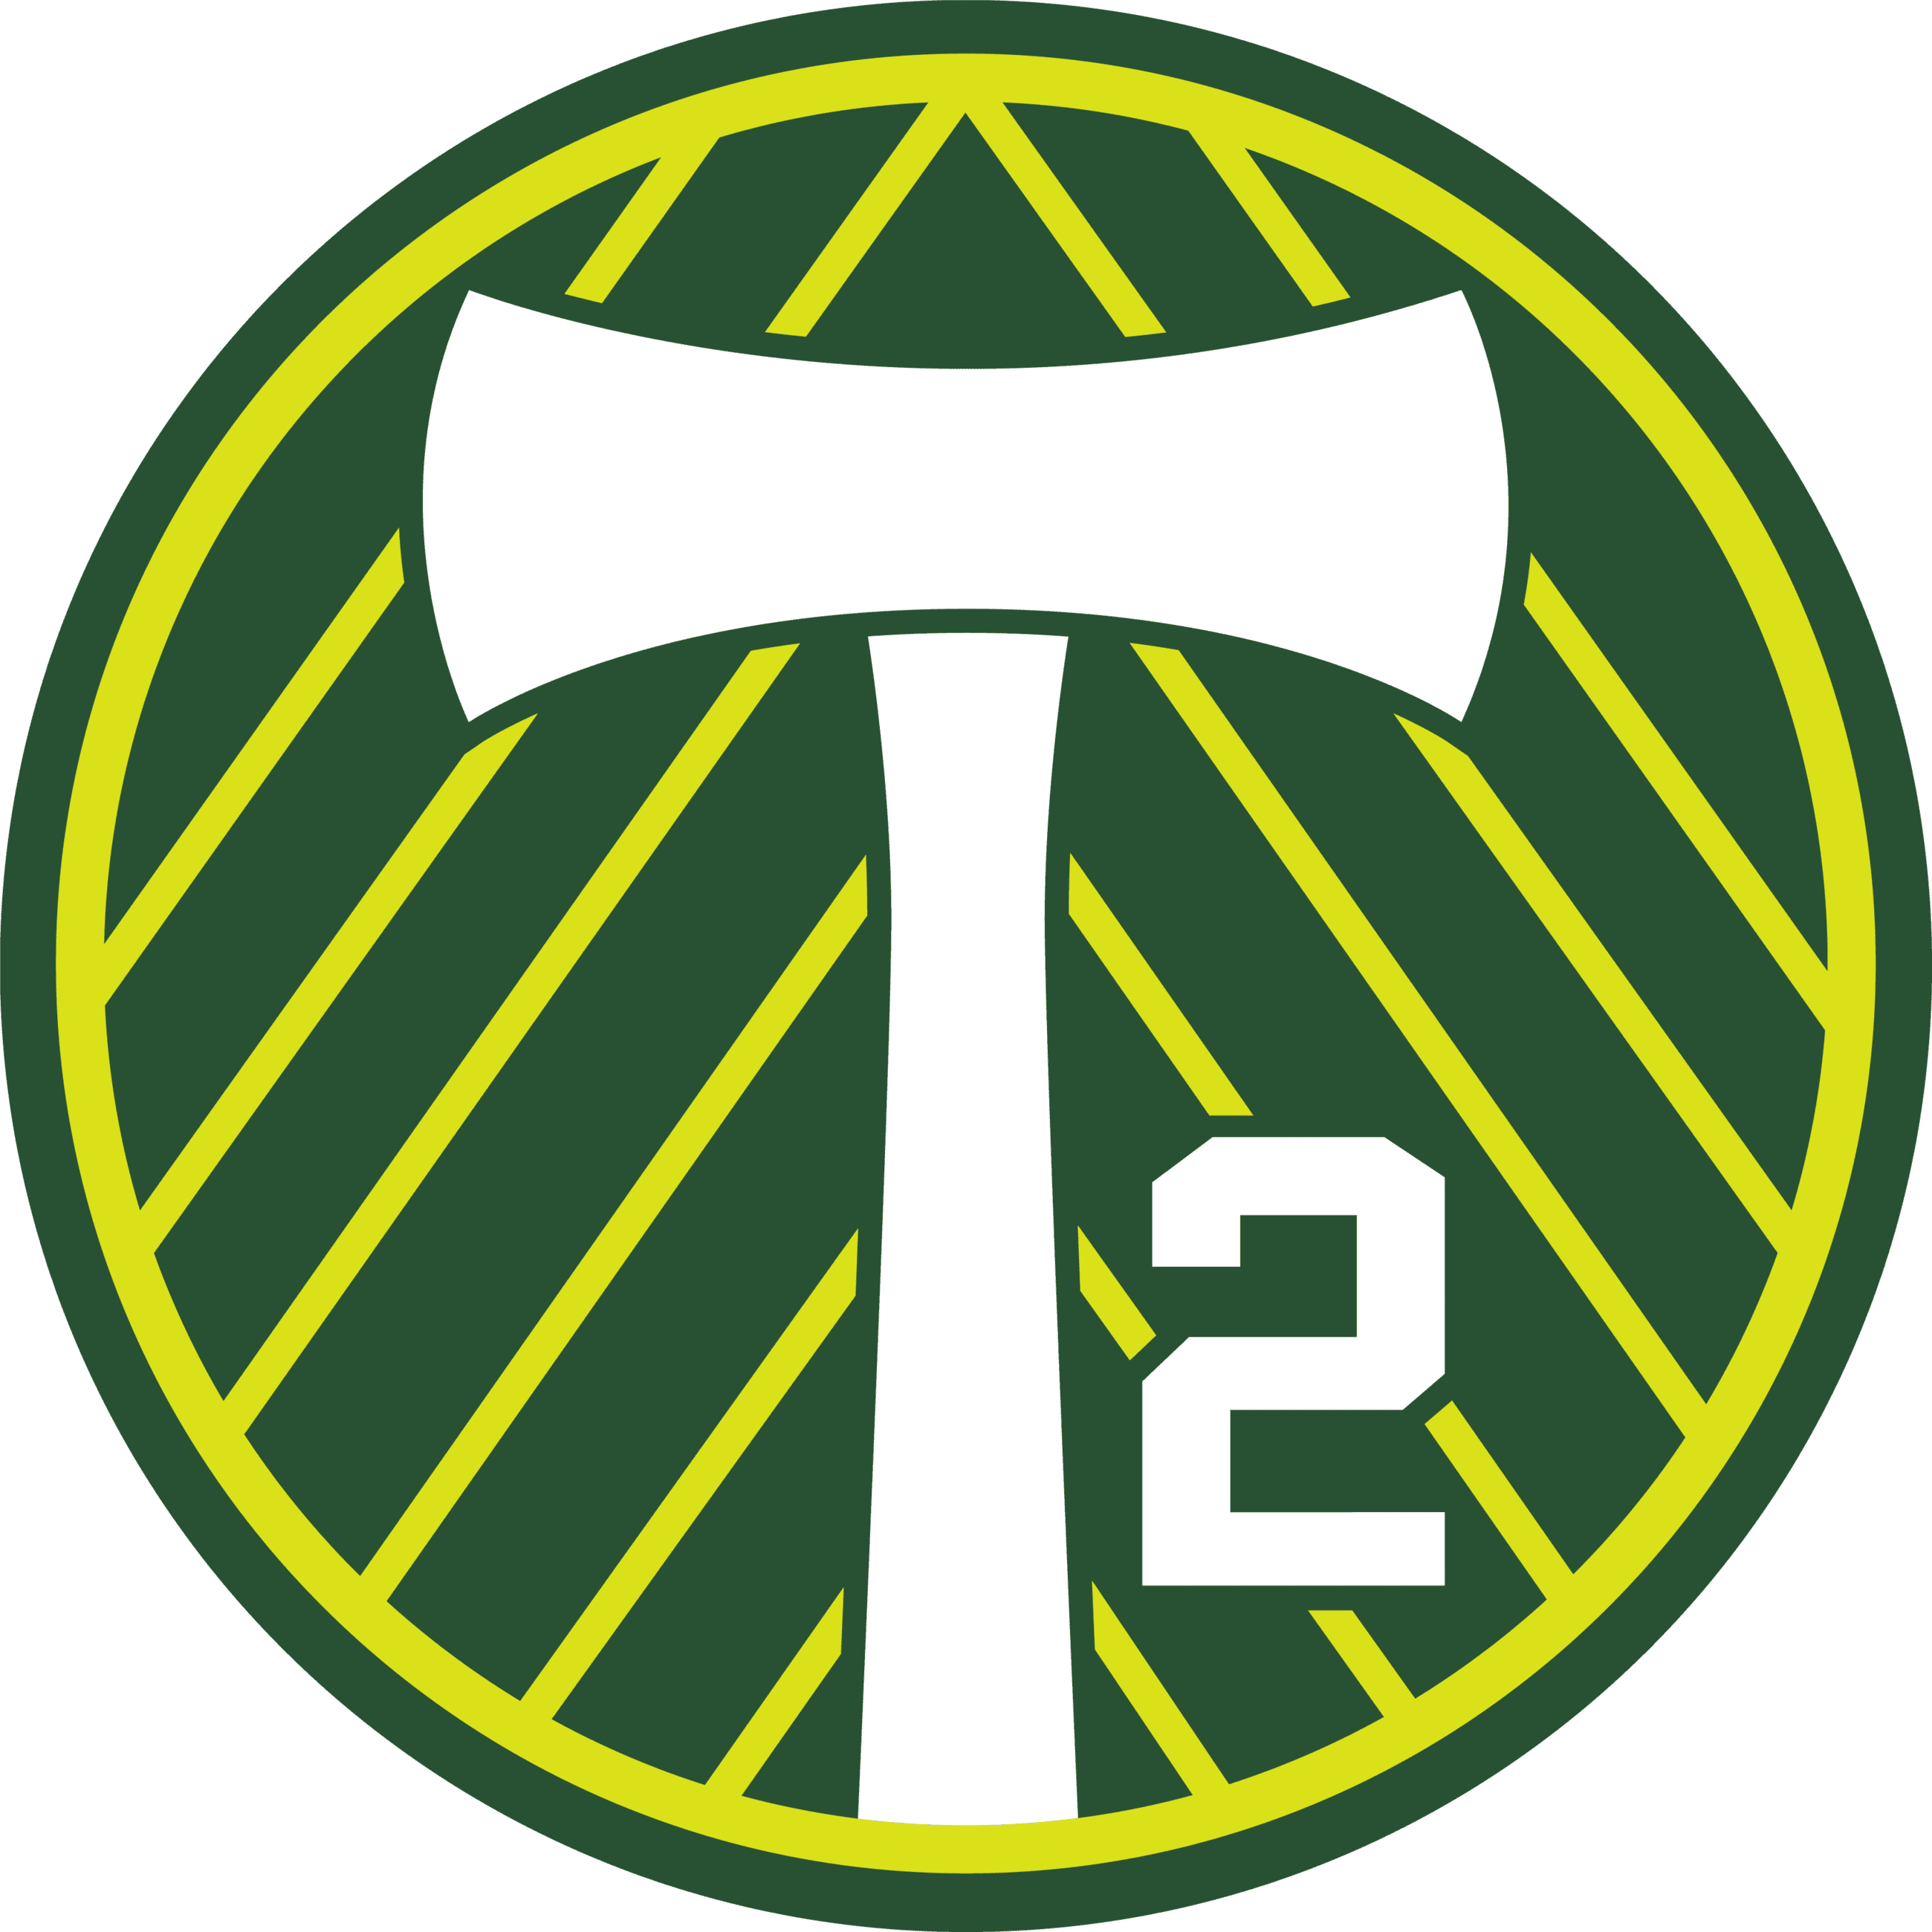 Logo for Portland Timbers, Oregon professional men's soccer team.